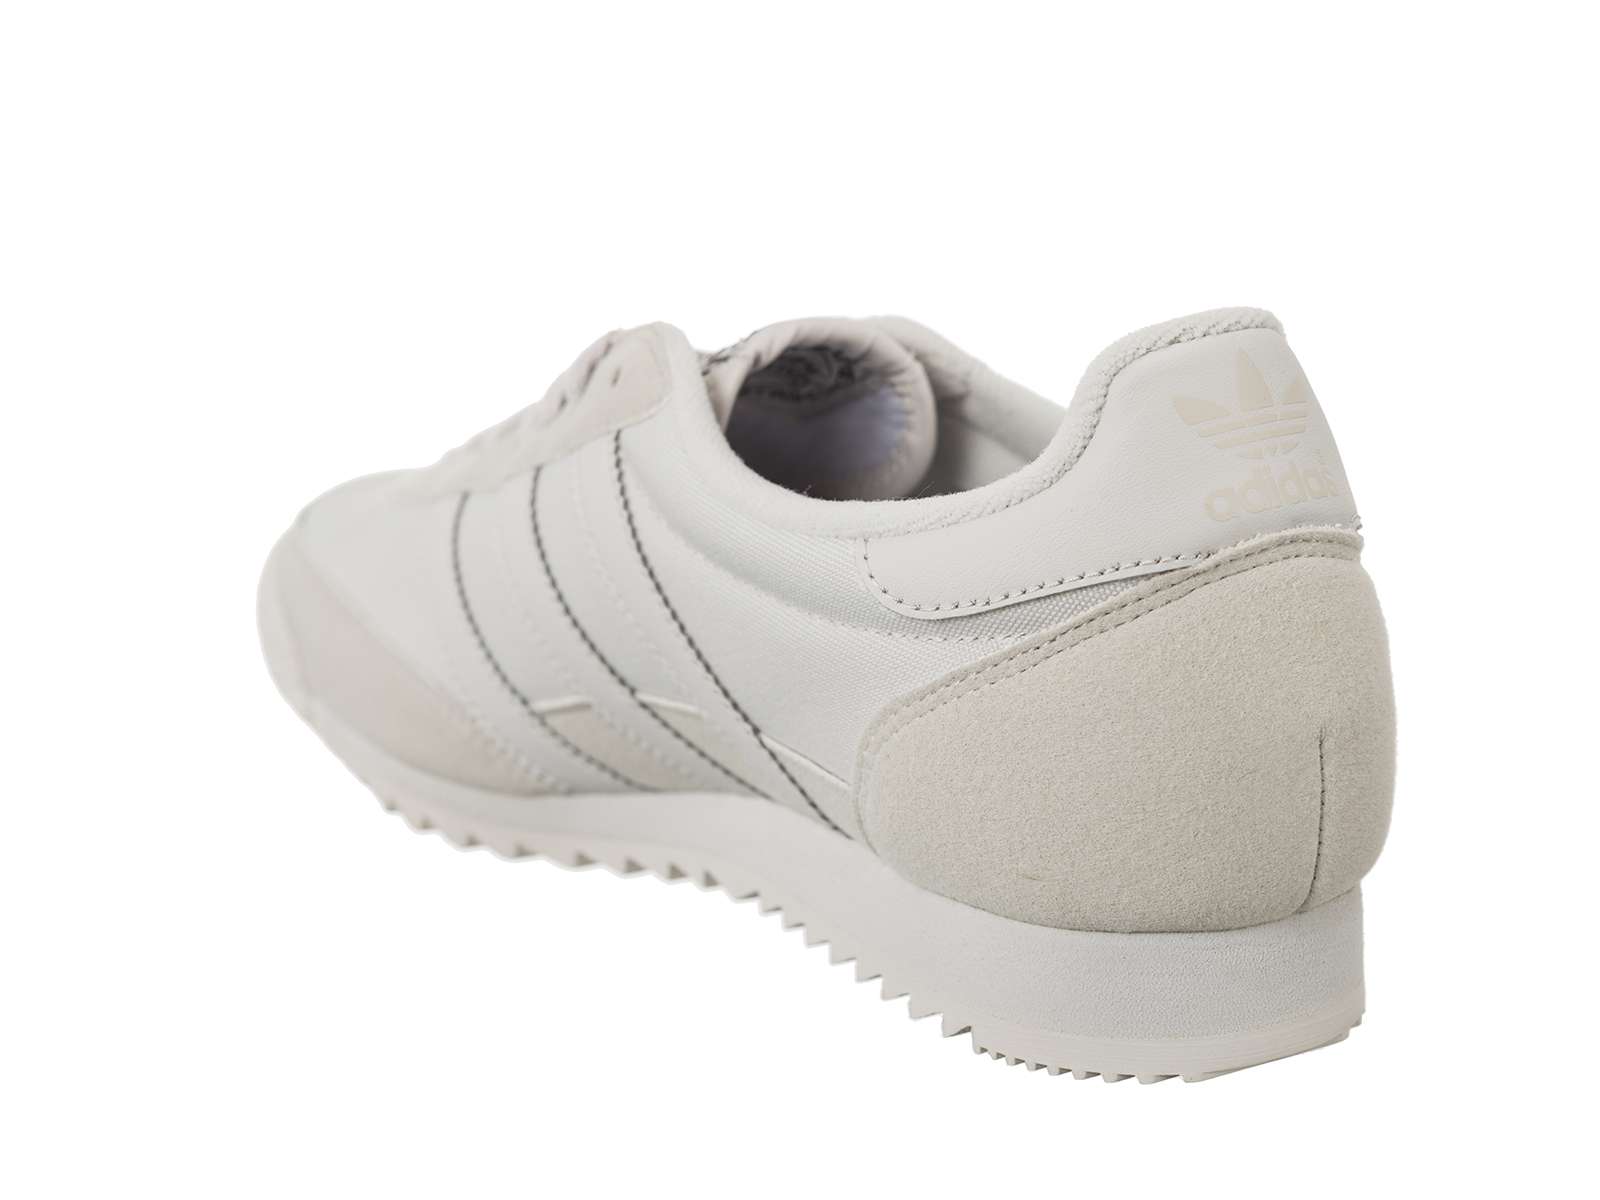 Chaussures Baskets adidas homme Dragon OG Grey One taille Gris Grise Cuir Lacets oOAi65slKx